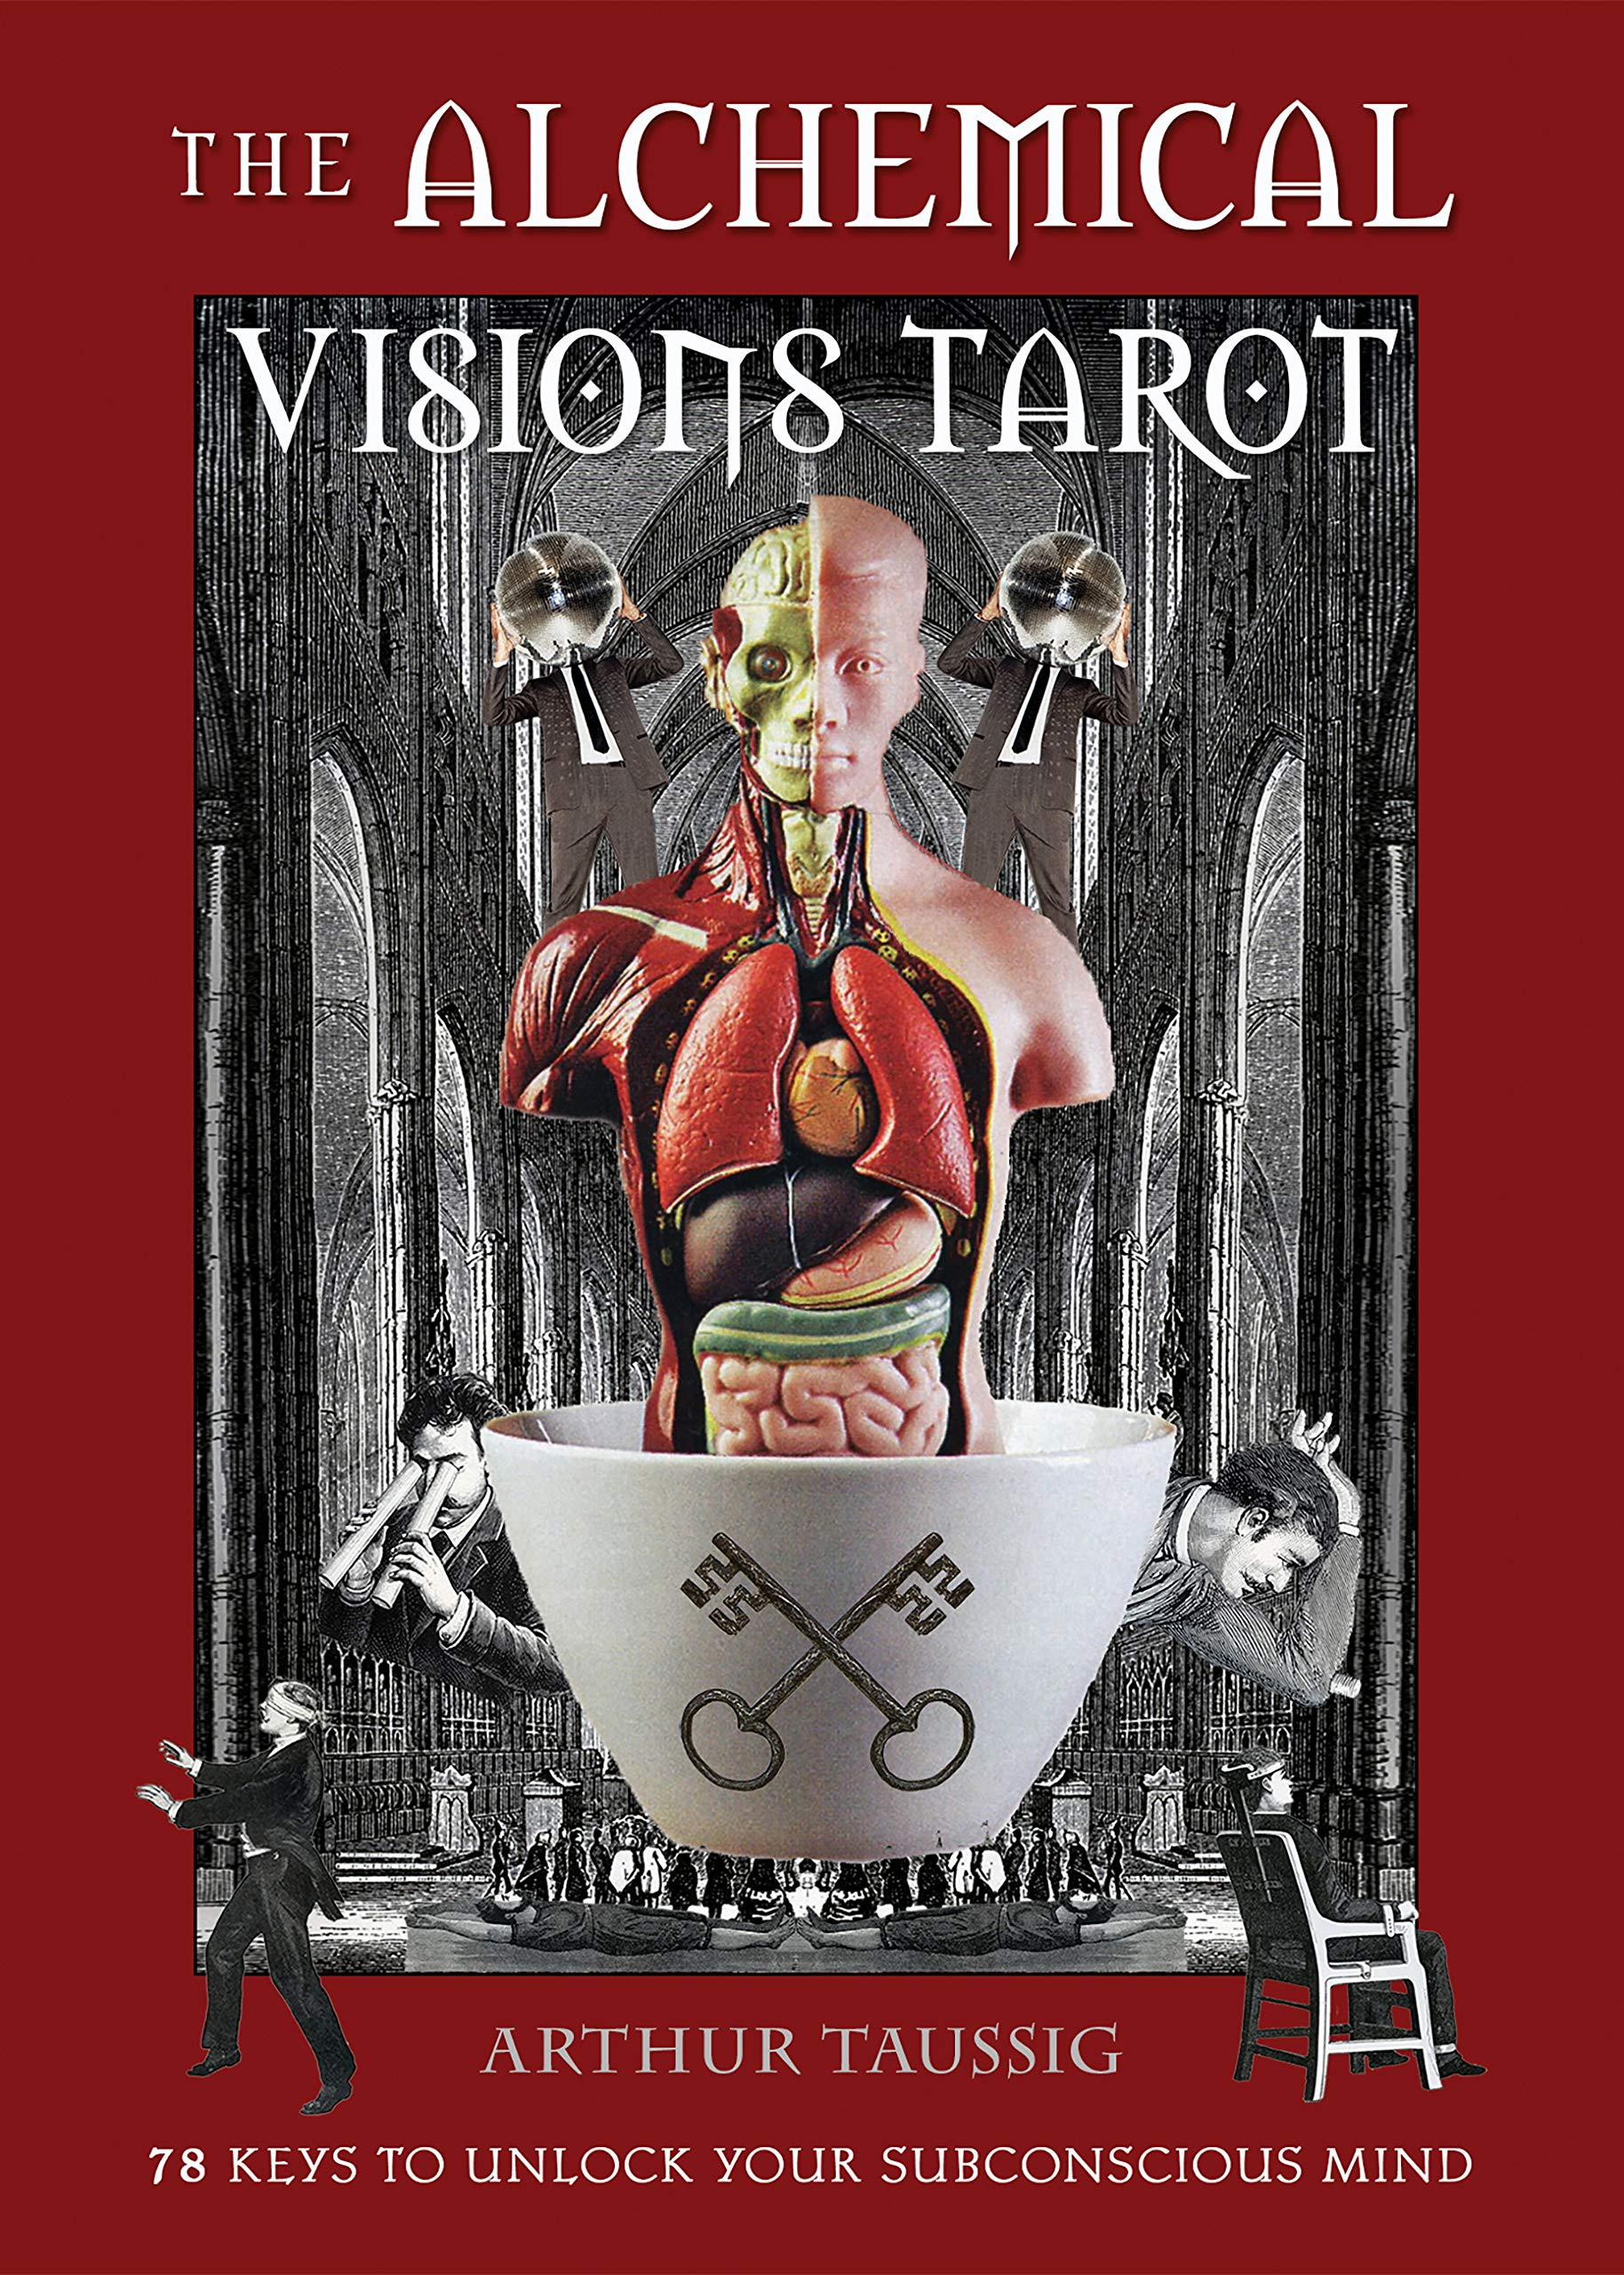 The Alchemical Visions Tarot: 78 Keys to Unlock Your Subconscious Mind (Book & Cards): Taussig, Arthur: 9781578636419: Amazon.com: Books